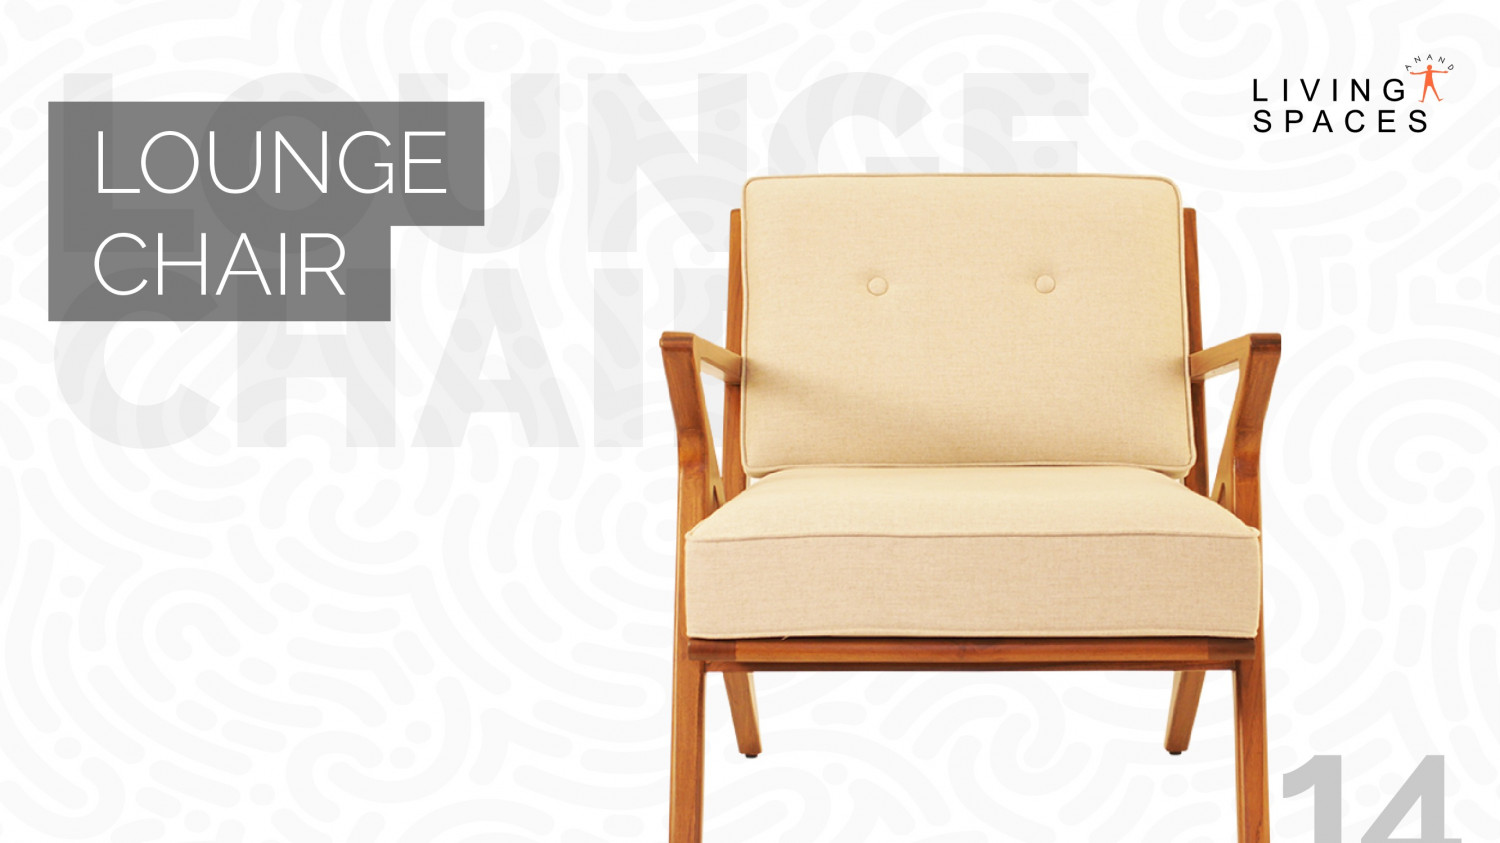 Best Lounge Chair by Living Spaces Infographic